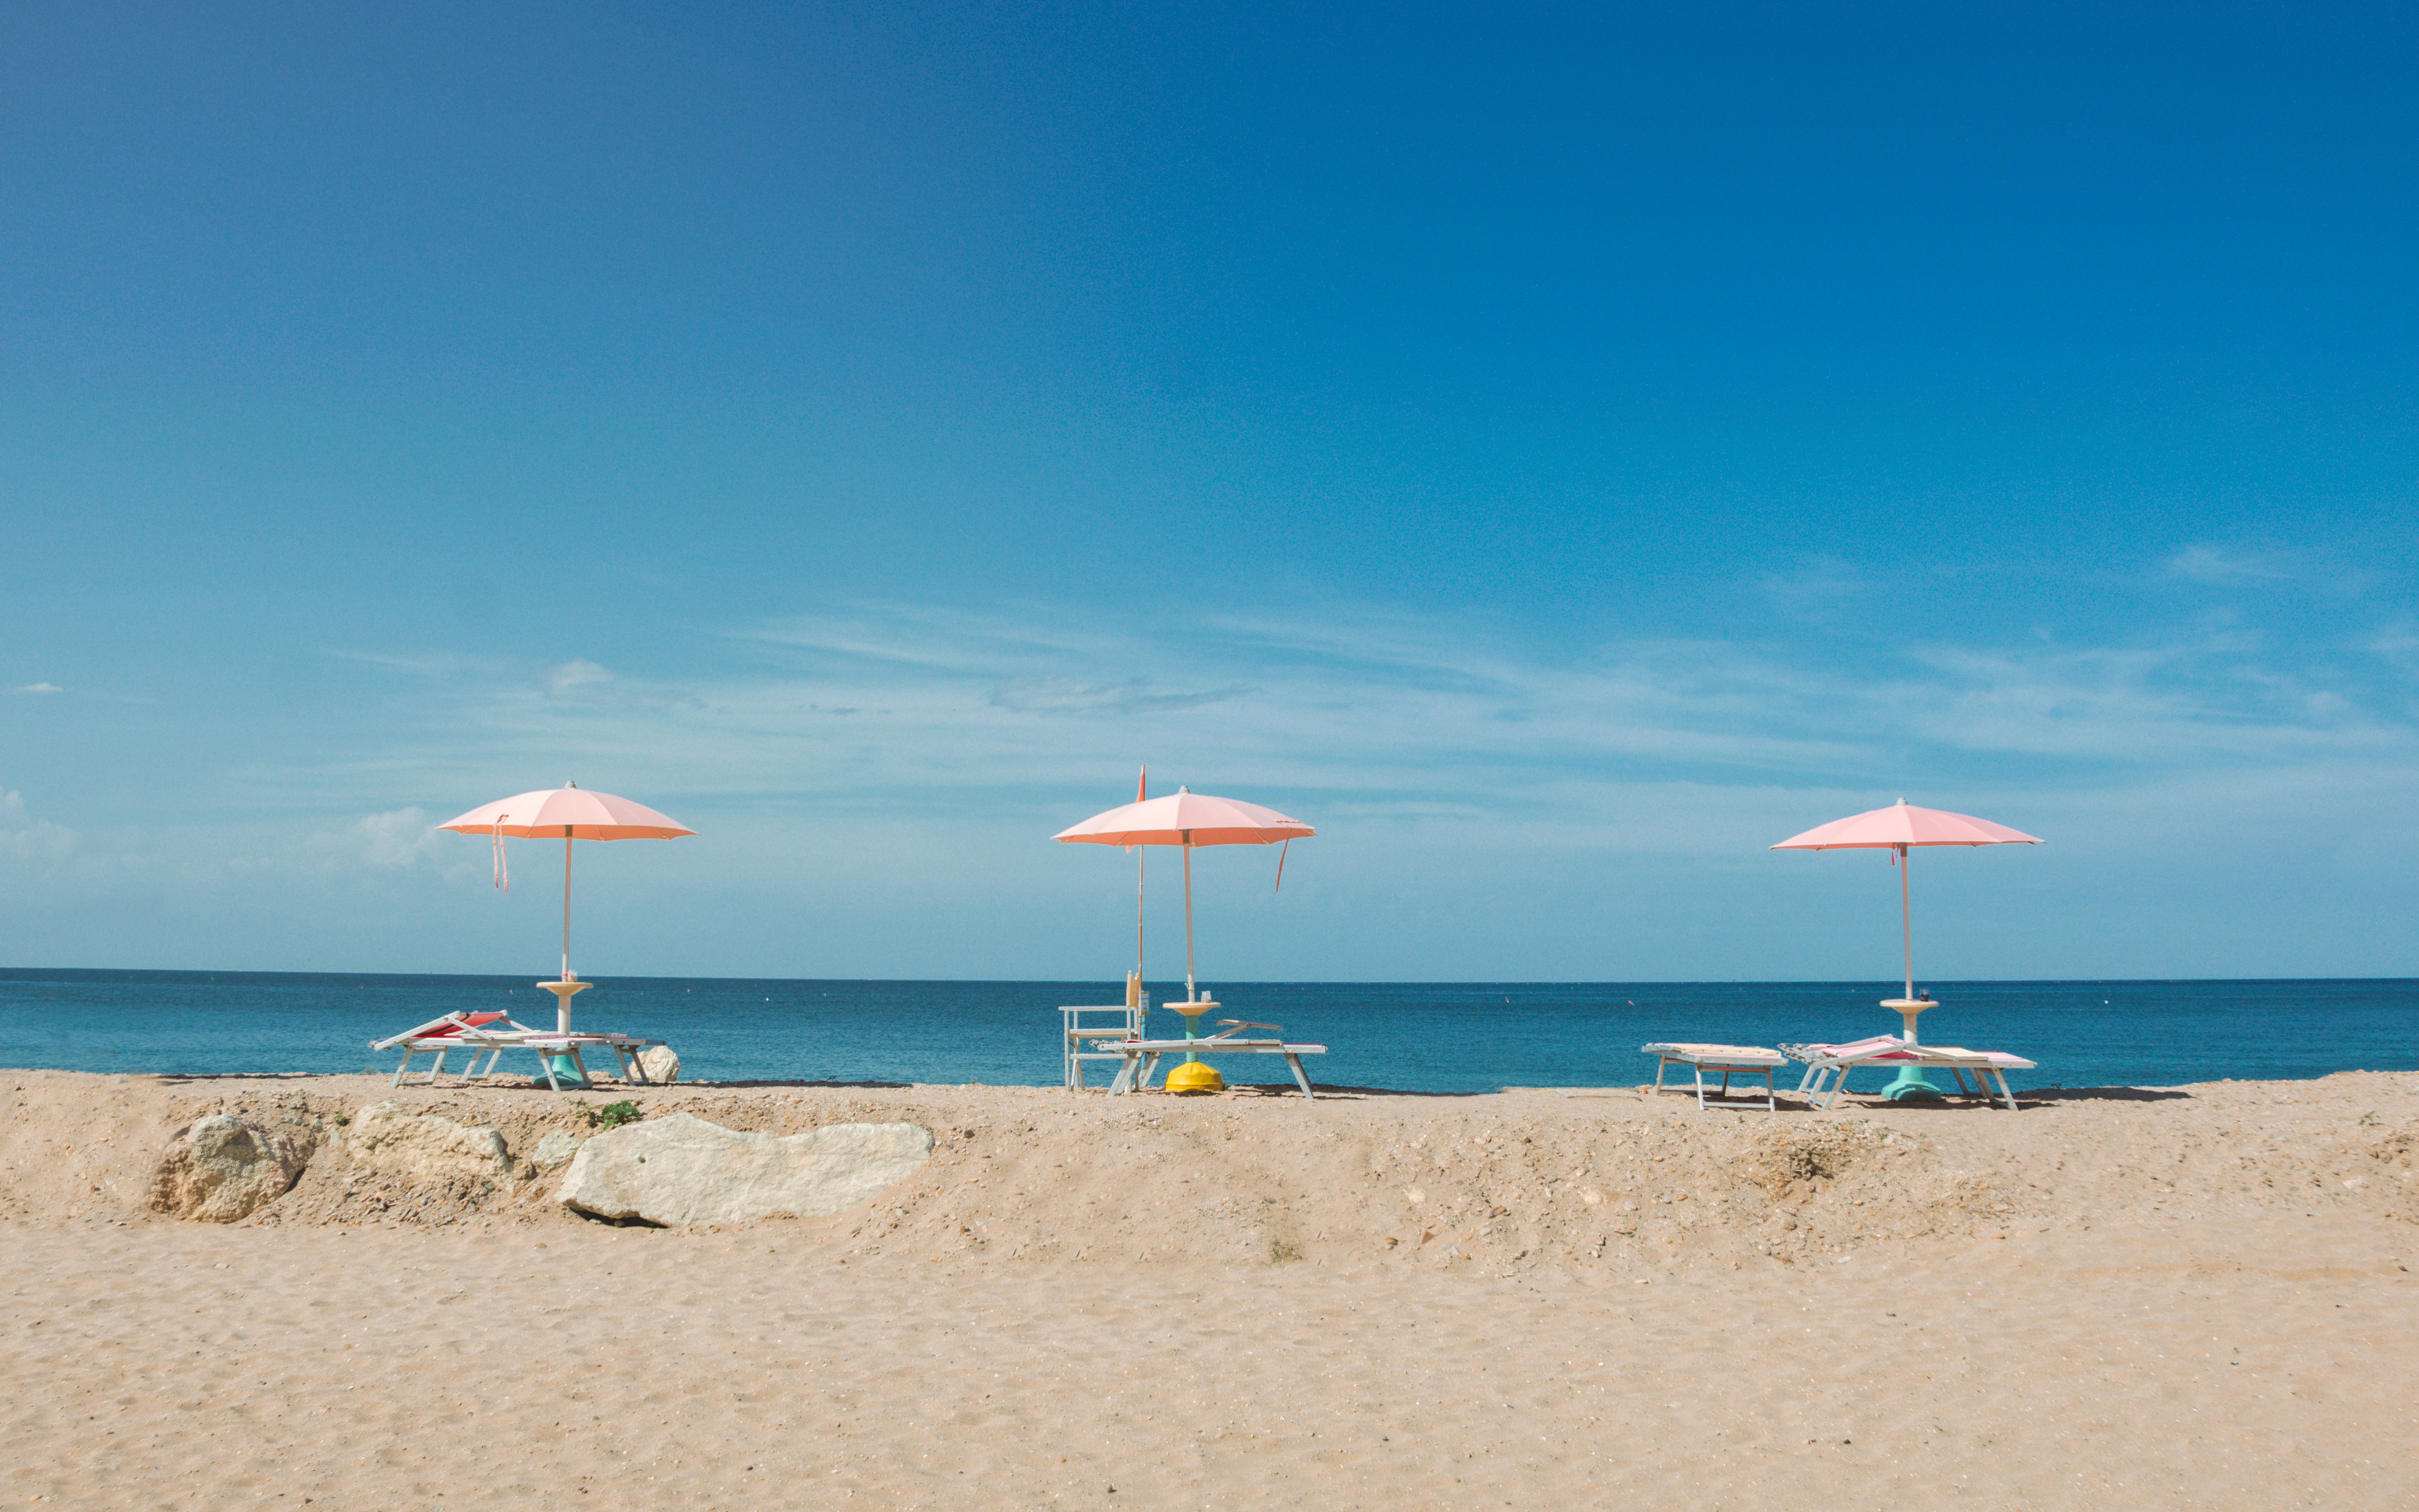 three empty beach loungers with umbrellas overlooking the beach under blue sky